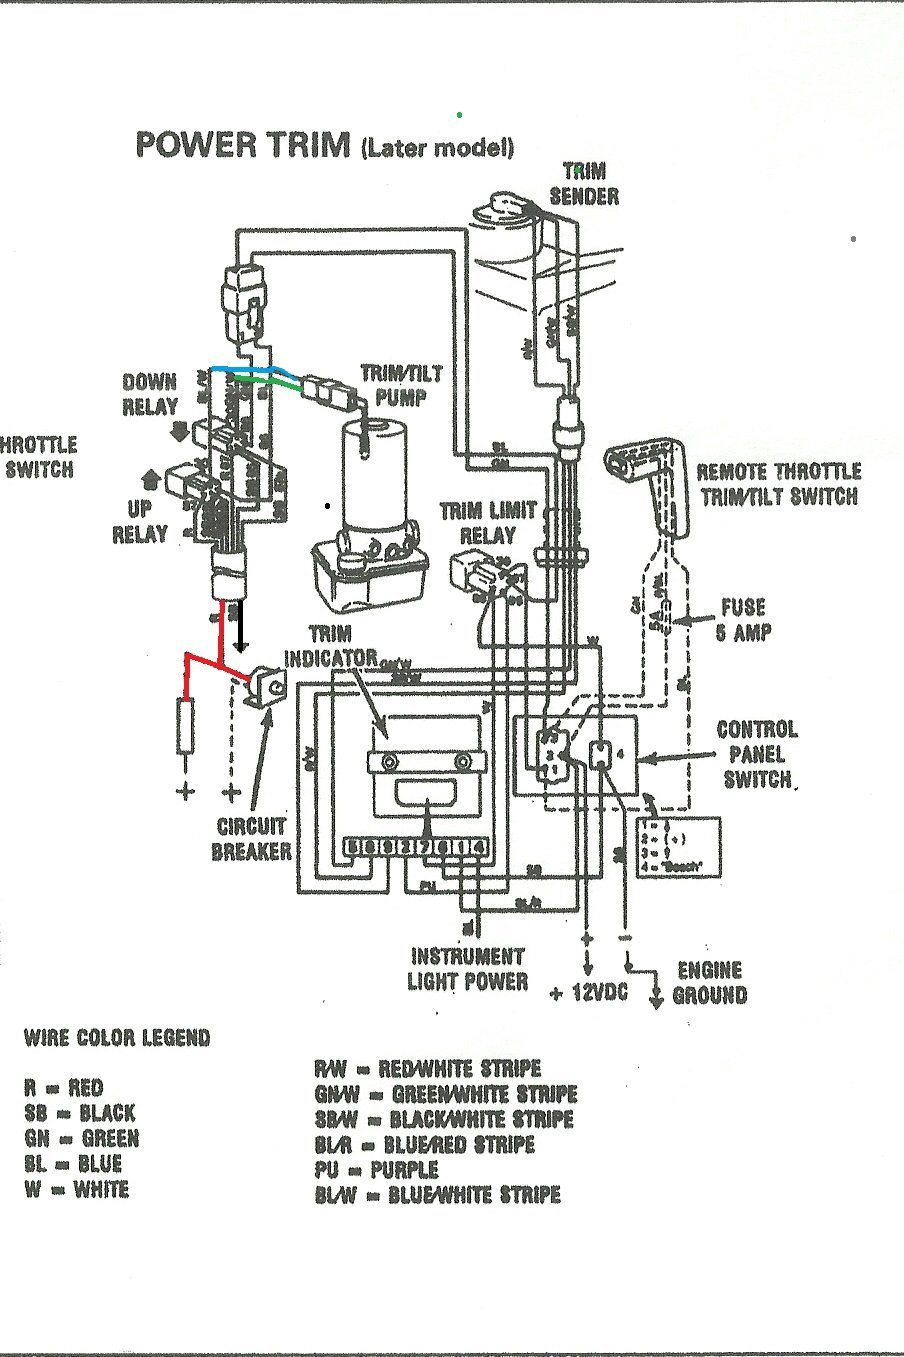 Tilt Trim Wiring Diagram from f01.justanswer.com